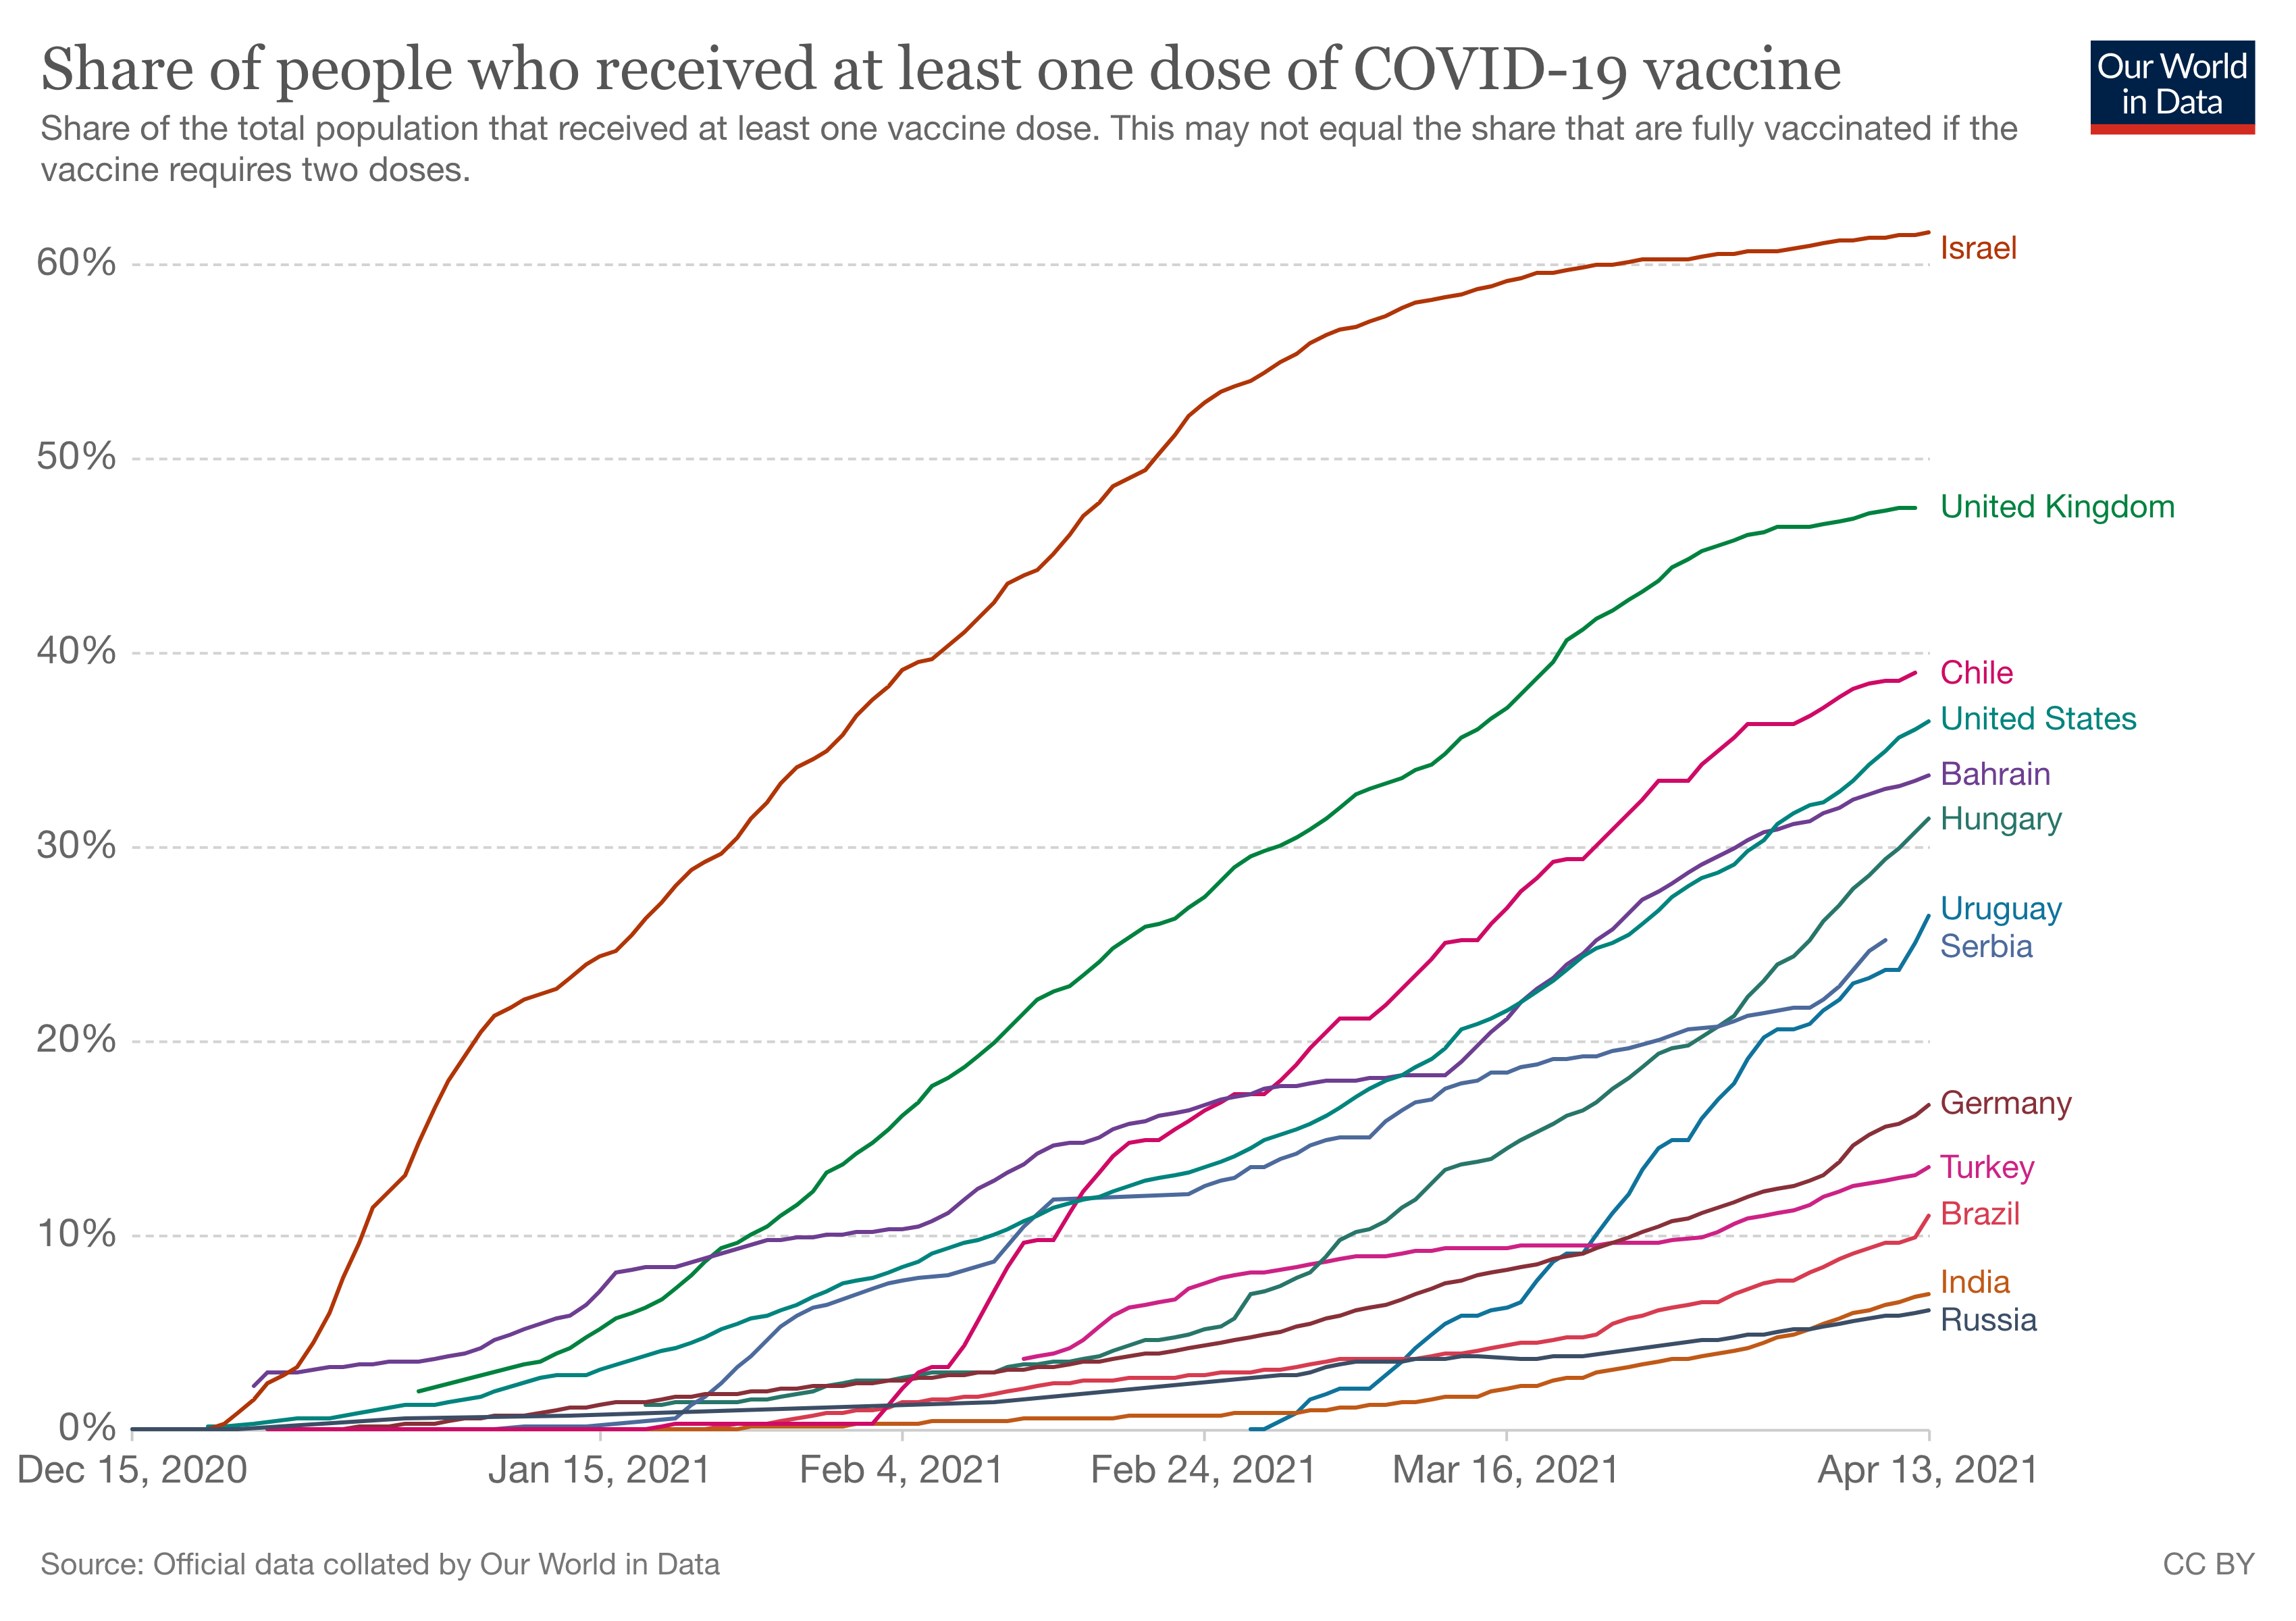 Share of people who received at least one dose of the COVID-19 vaccine in selected countries